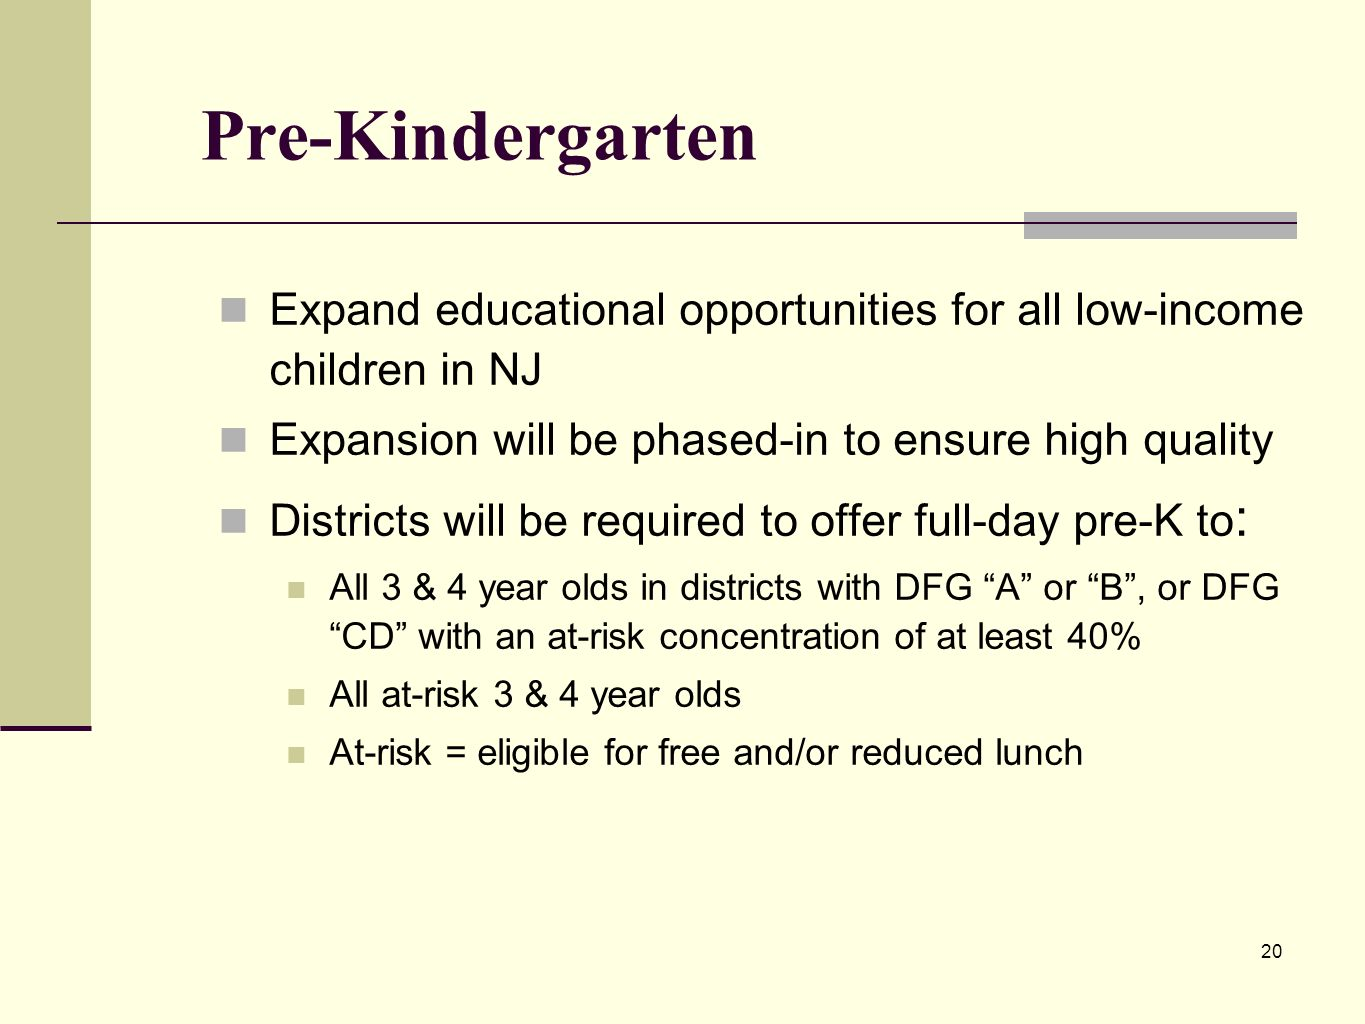 20 Pre-Kindergarten Expand educational opportunities for all low-income children in NJ Expansion will be phased-in to ensure high quality Districts will be required to offer full-day pre-K to : All 3 & 4 year olds in districts with DFG A or B, or DFG CD with an at-risk concentration of at least 40% All at-risk 3 & 4 year olds At-risk = eligible for free and/or reduced lunch